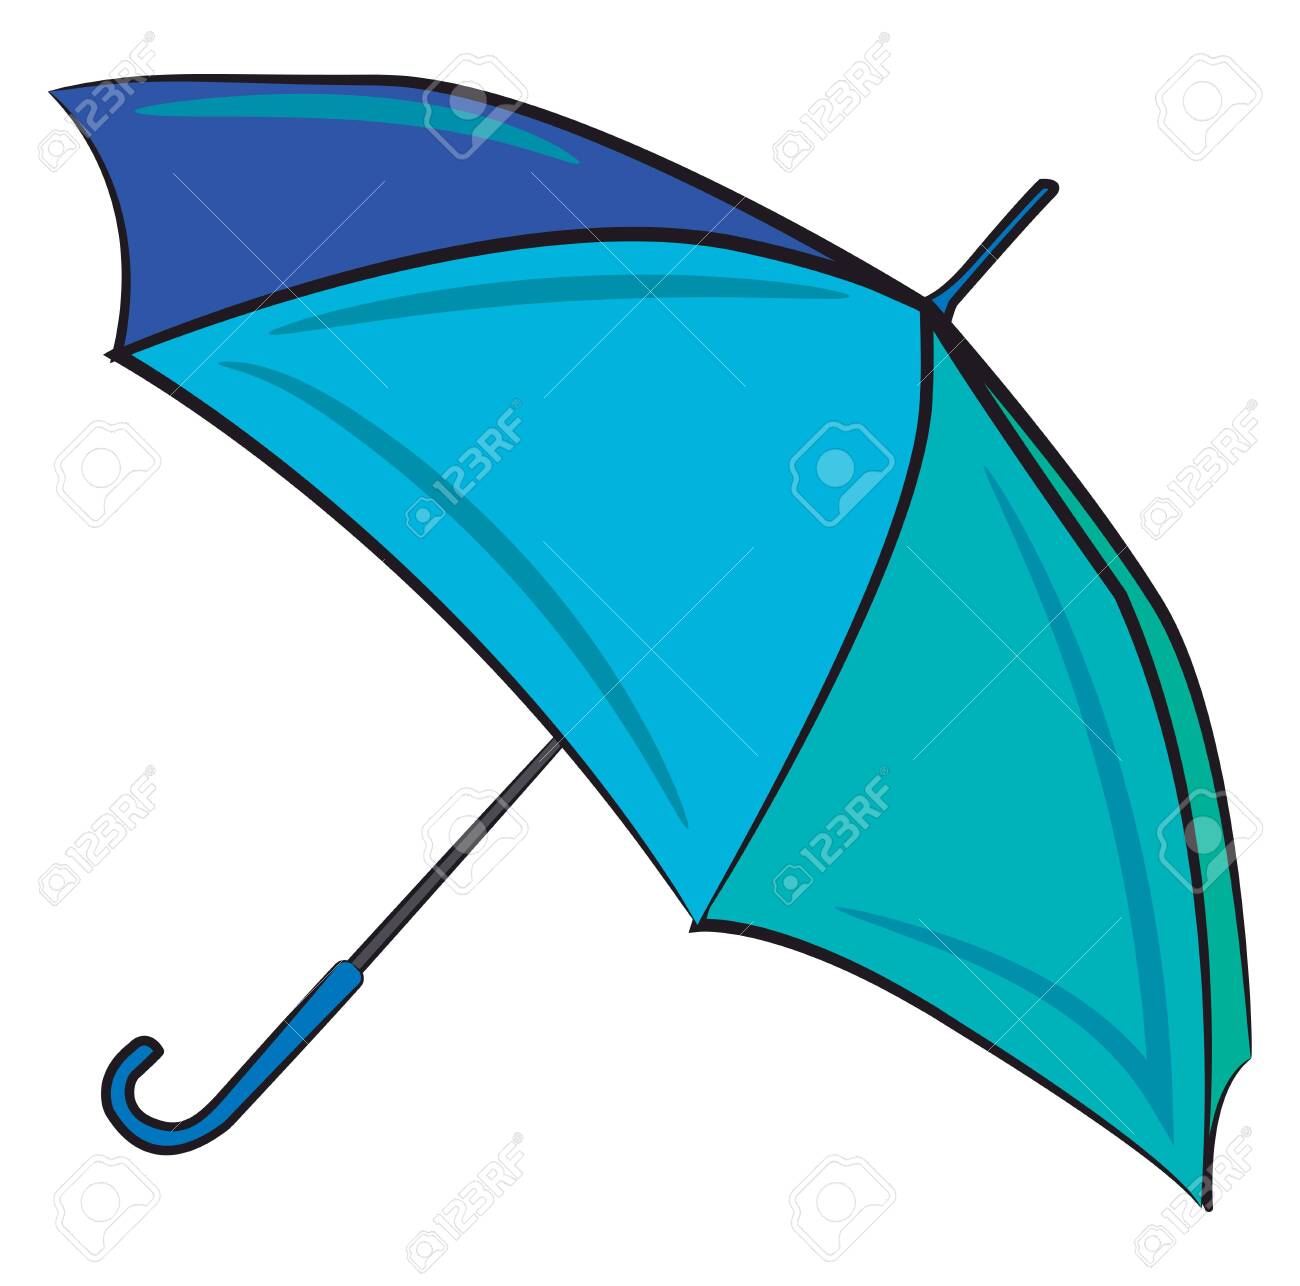 A Big Open Umbrella In Blue Color Vector Color Drawing Or Illustration Royalty Free Cliparts Vectors And Stock Illustration Image 123449484